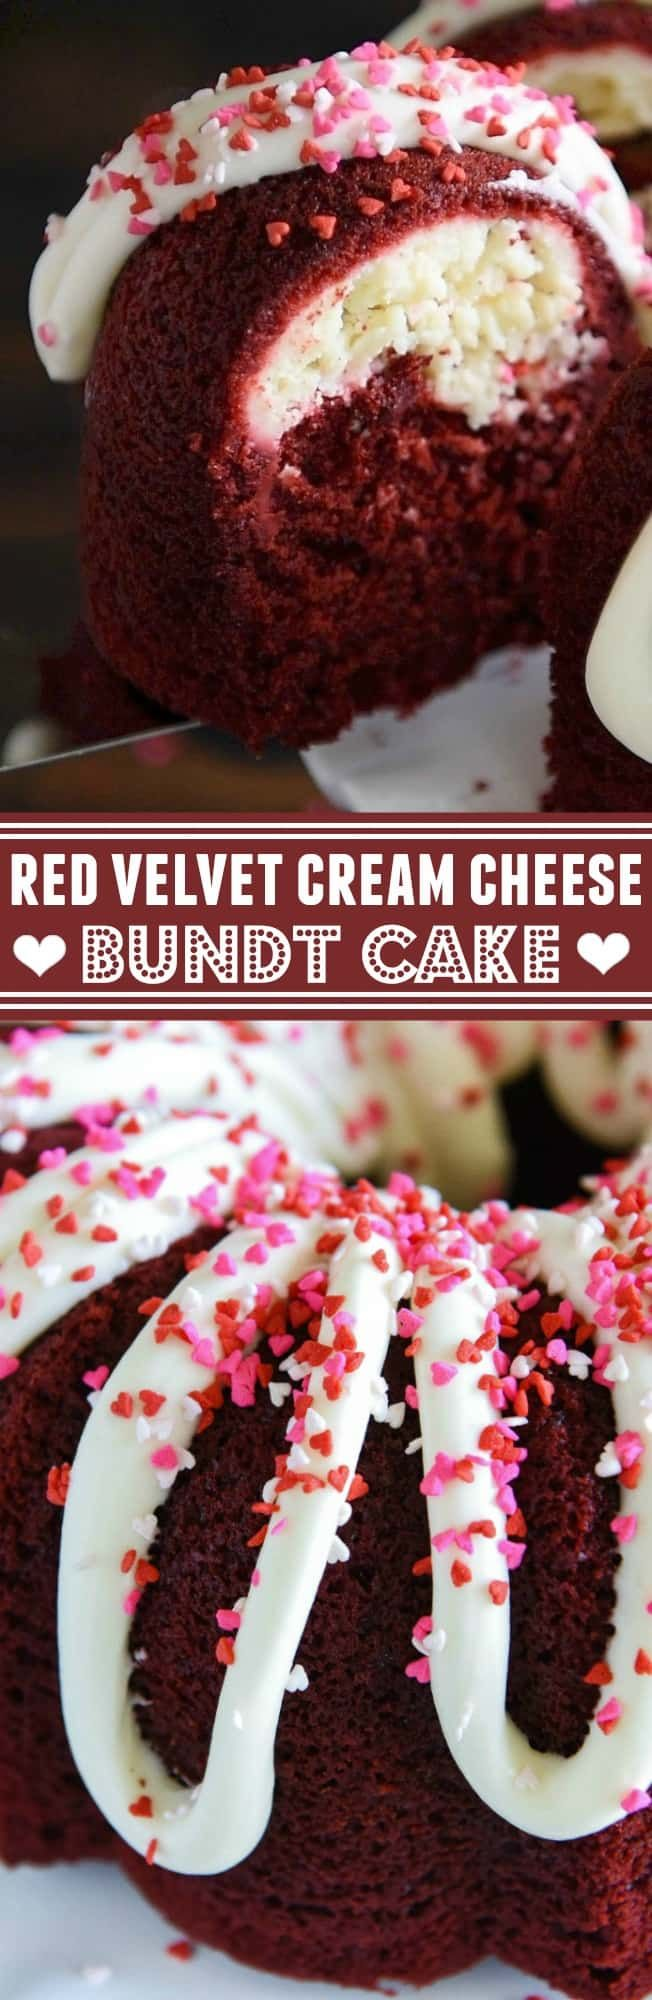 Red Velvet Cream Cheese Bundt Cake: this moist red velvet bundt cake is swirled with a sweet cream cheese filling and topped with a whipped cream cheese frosting!